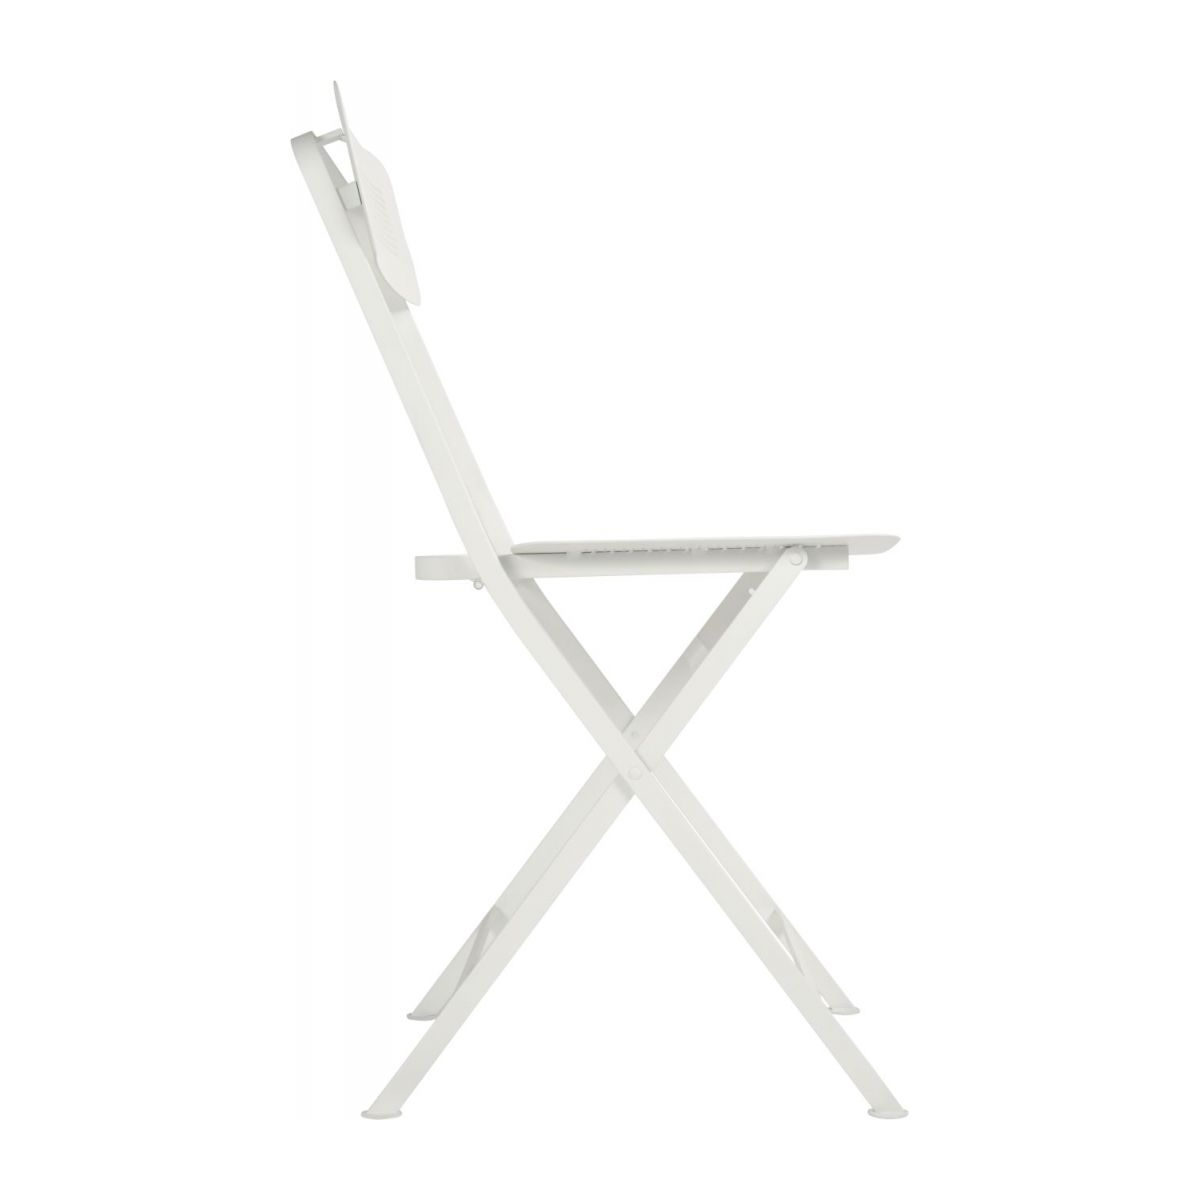 Folding chair made of metal, white n°5